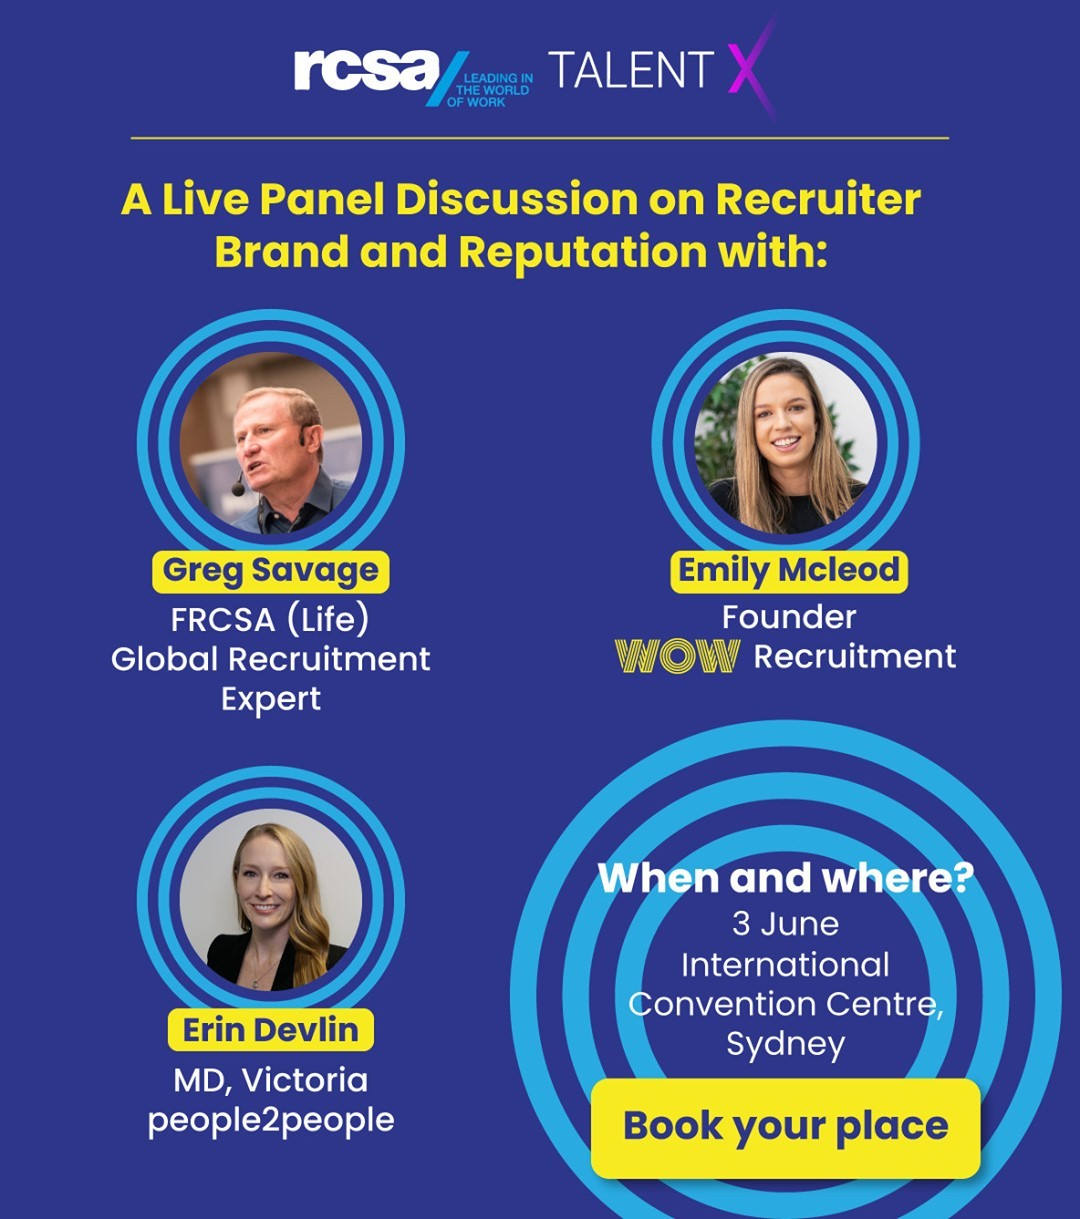 Two weeks until #TalentX!Interested in how the recruiters of the future should present themselves to the market and forge new connections? Join our founder Emily Mcleod, Greg Savage (The Savage Truth), and Erin Devlin (people2people) to find out at Talent X next month. Booked your ticket yet? Reserve a spot, here.  https://rcsa.eventsair.com/rcsa-au-2021-talentx/#RecruitmentHappy #Wecruitment #RCSA